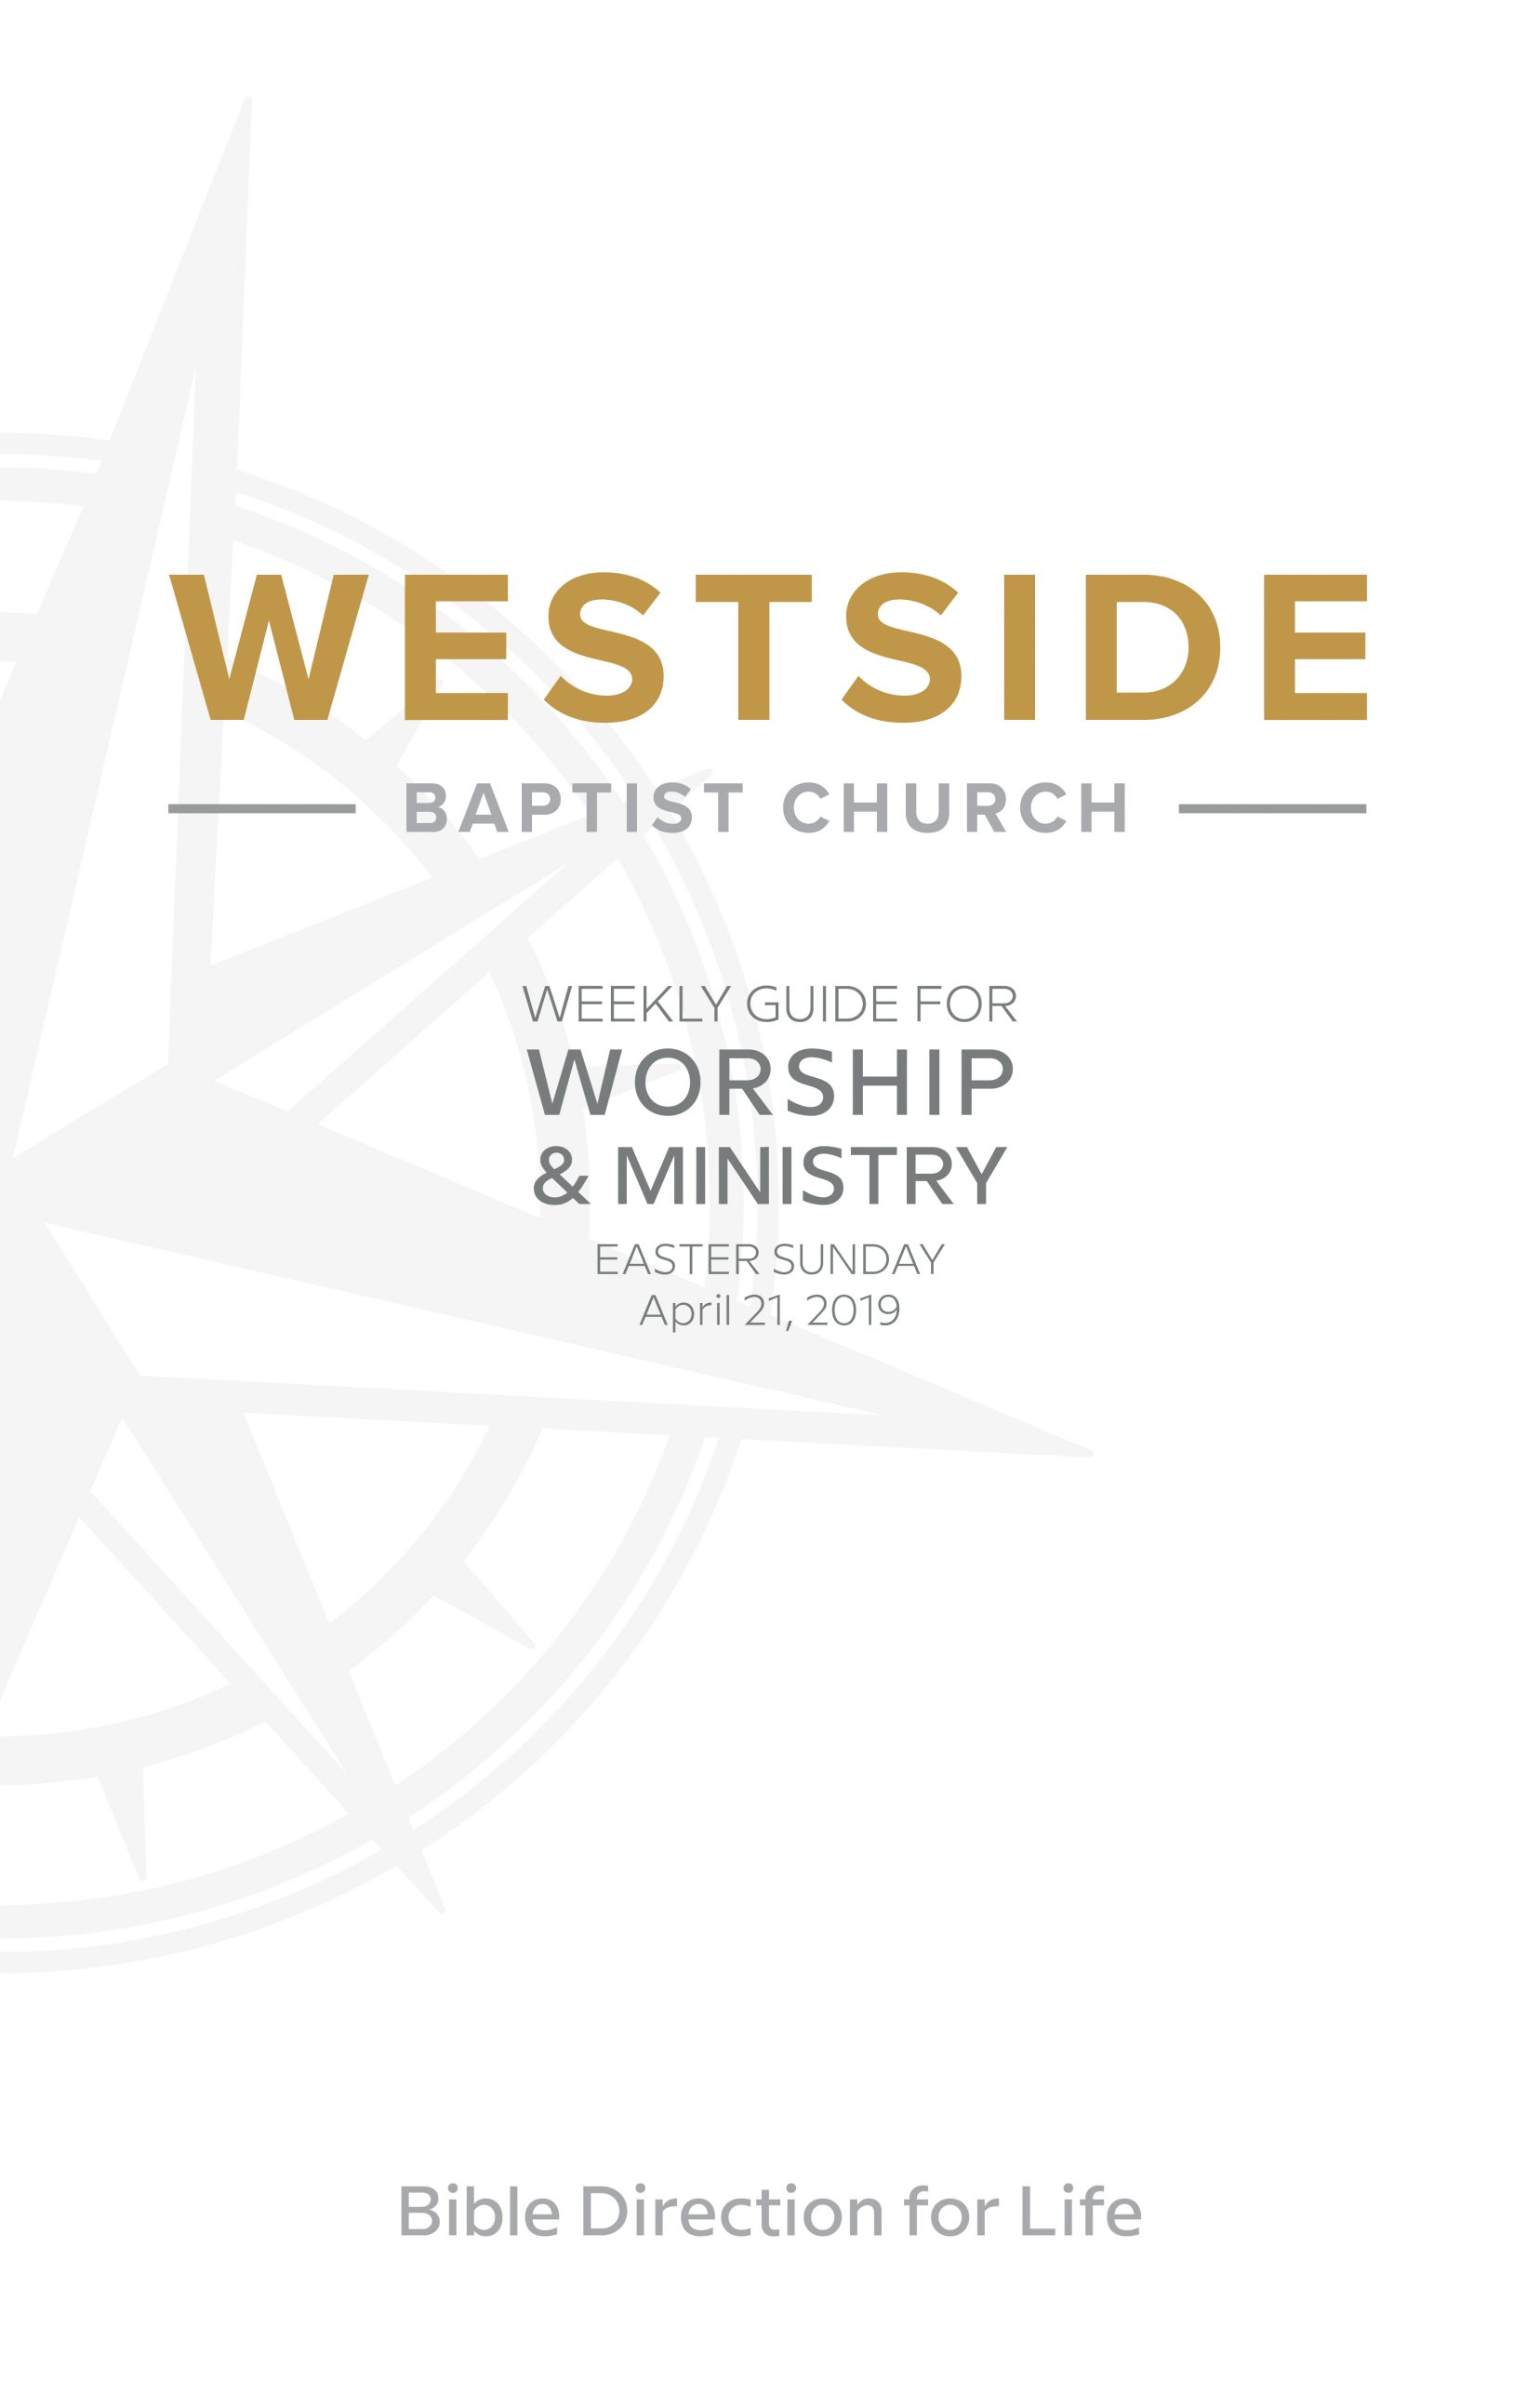 Weekly Guide for Worship and Ministry—April 21